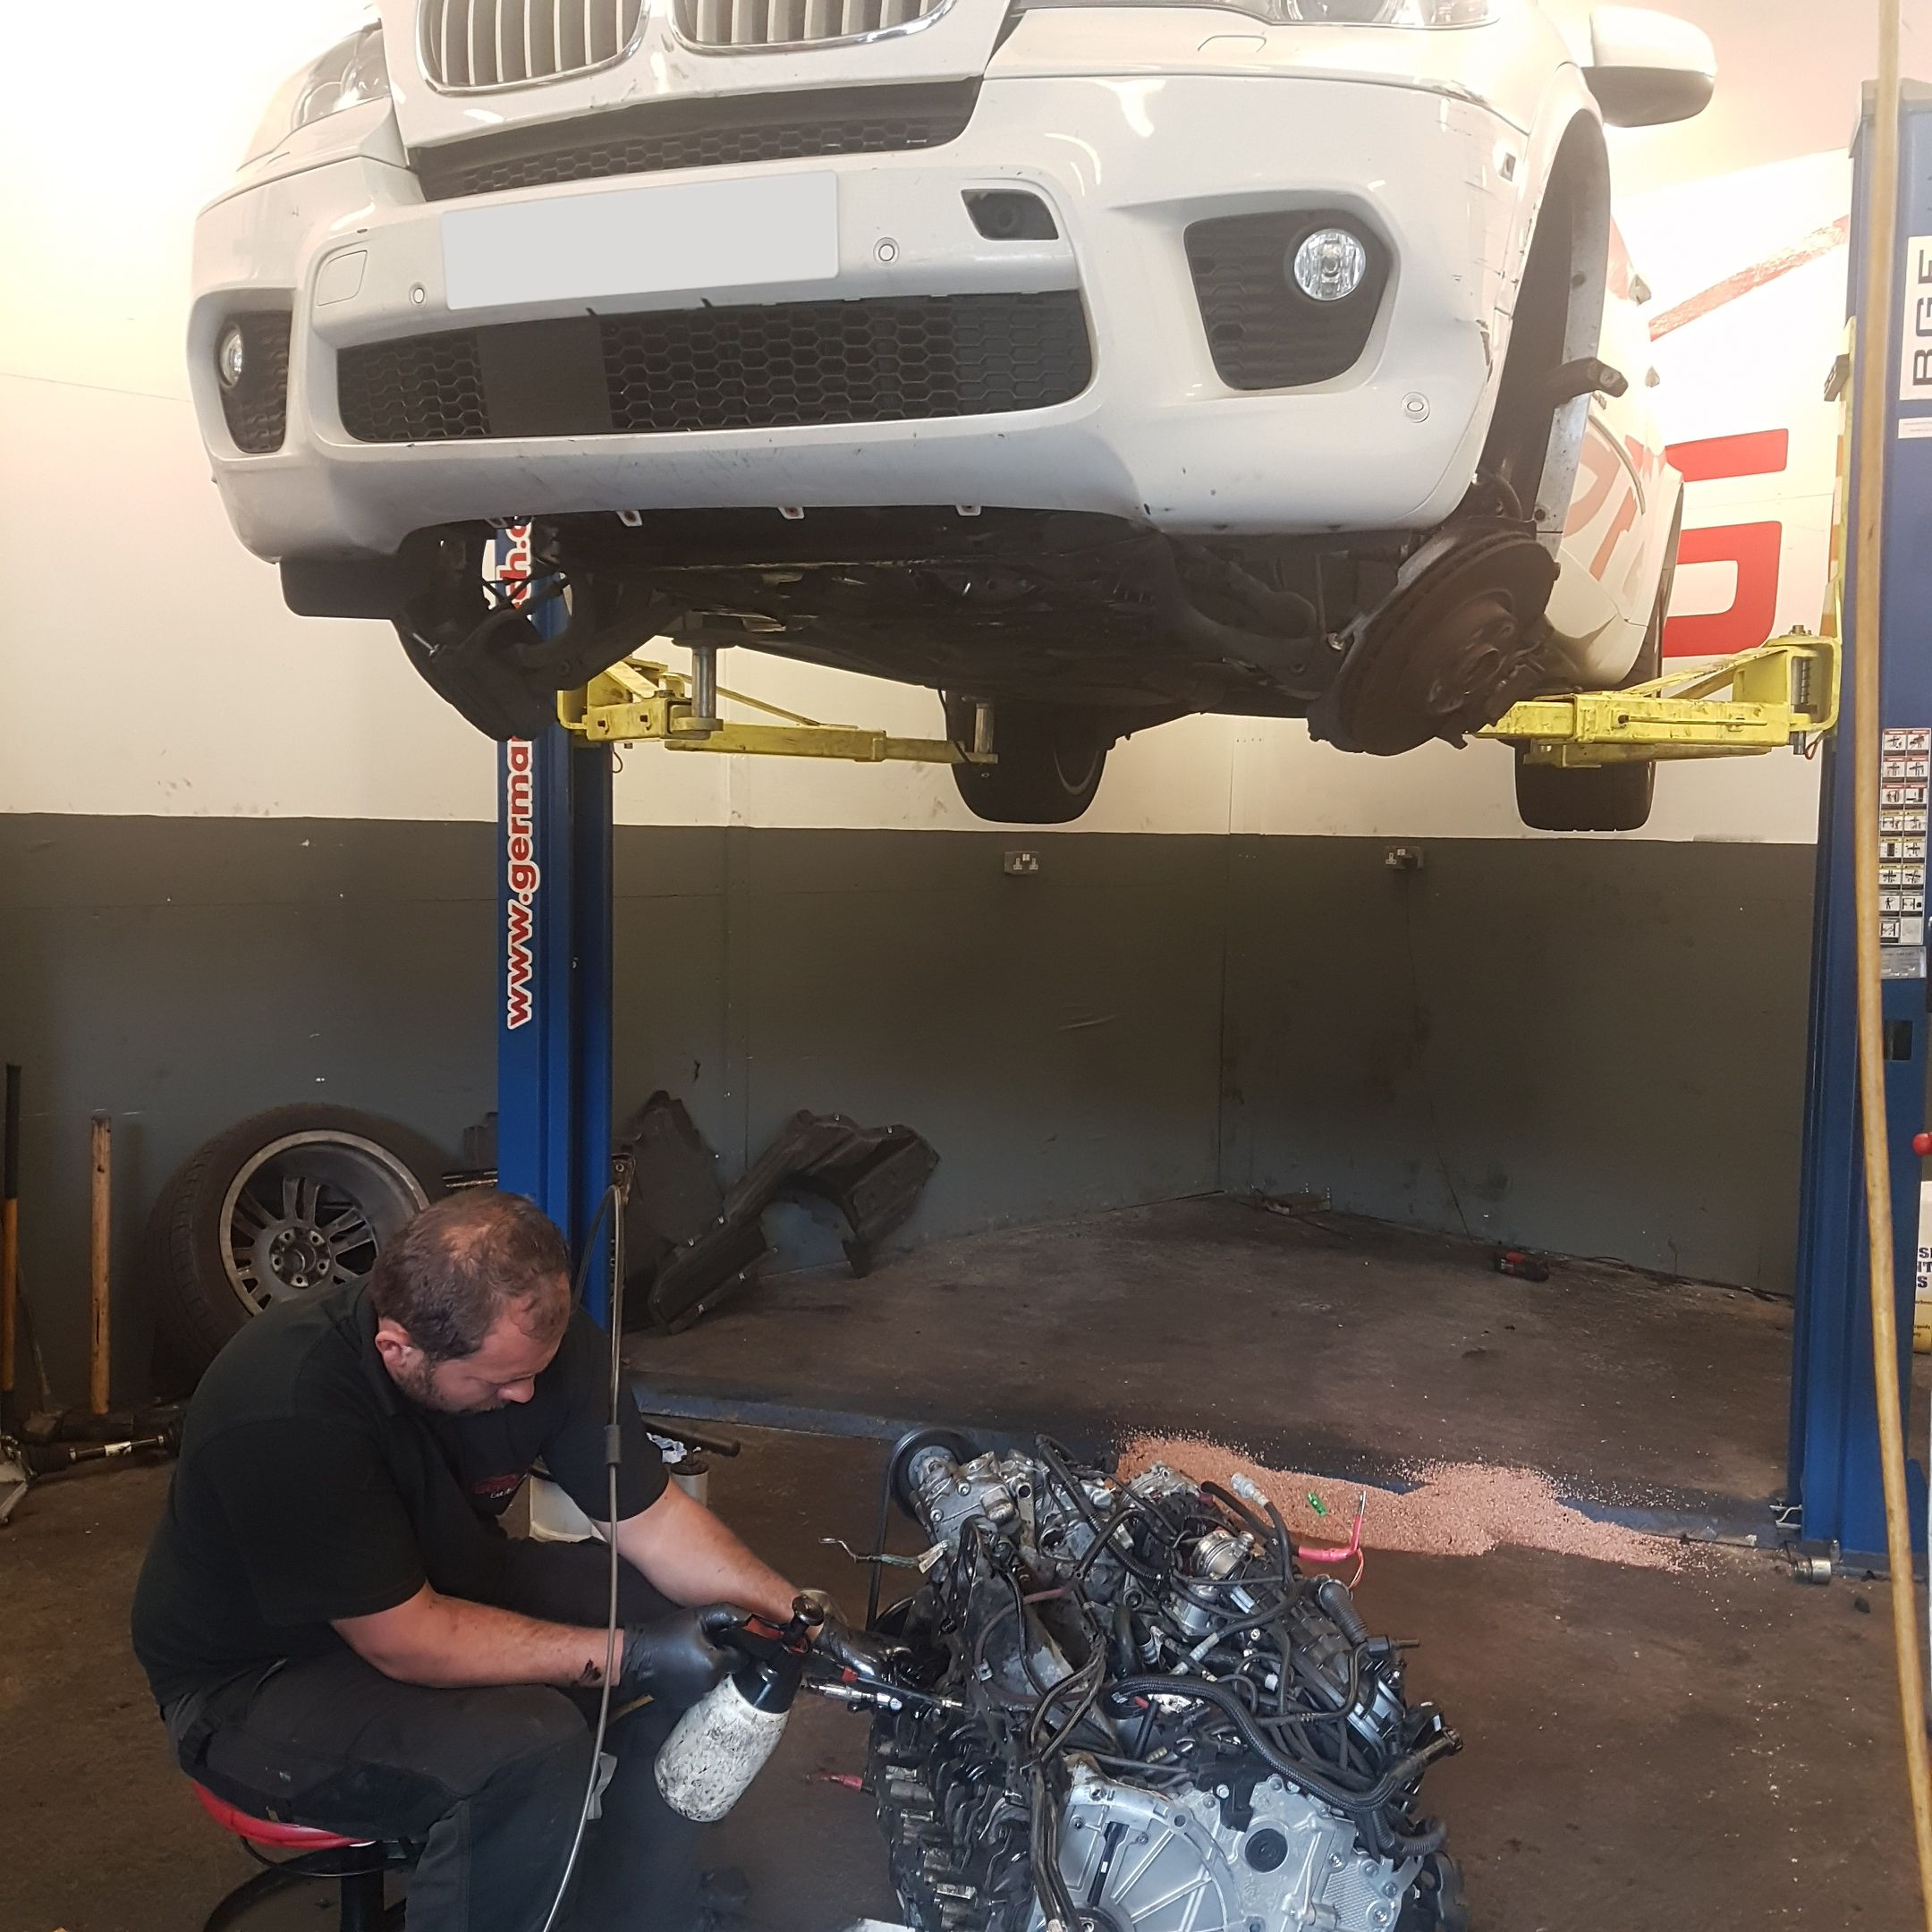 Repairing of BMW under the supervision of the best mechanics in UK